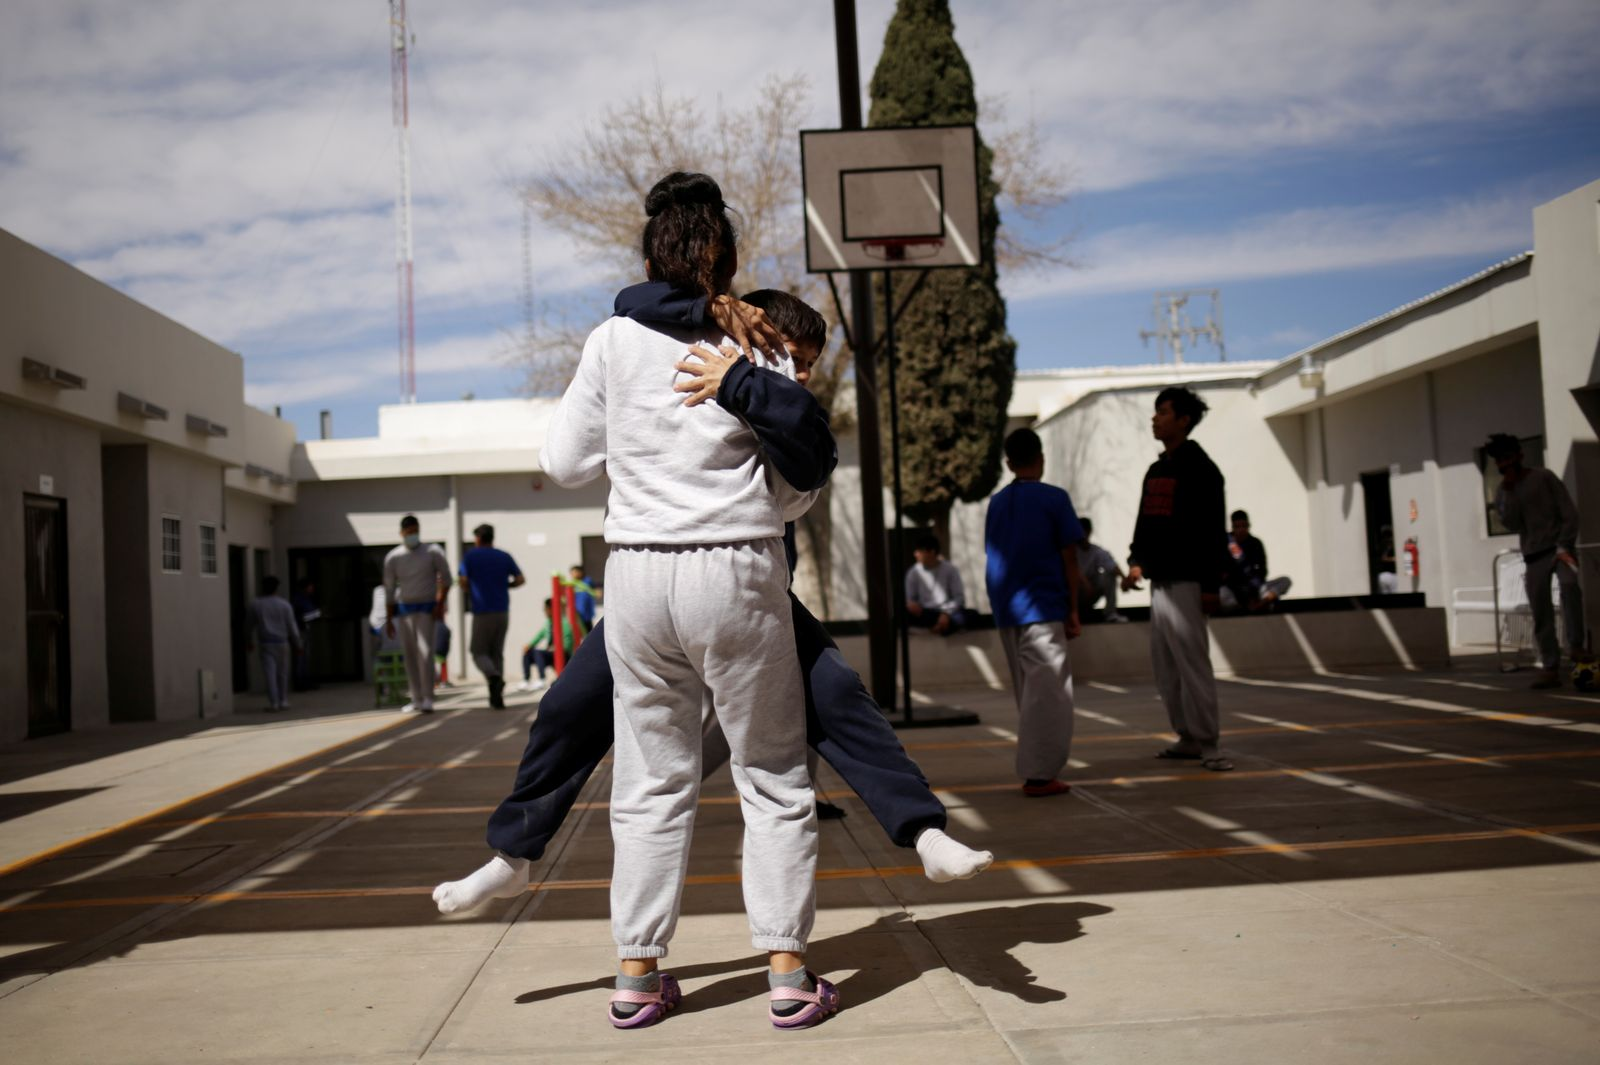 Migrant children from Central America and Mexico play in a recreation area the Noemi Alvarez Quillay immigrant shelter for unaccompanied minors, run by the Mexican government, in Ciudad Juarez